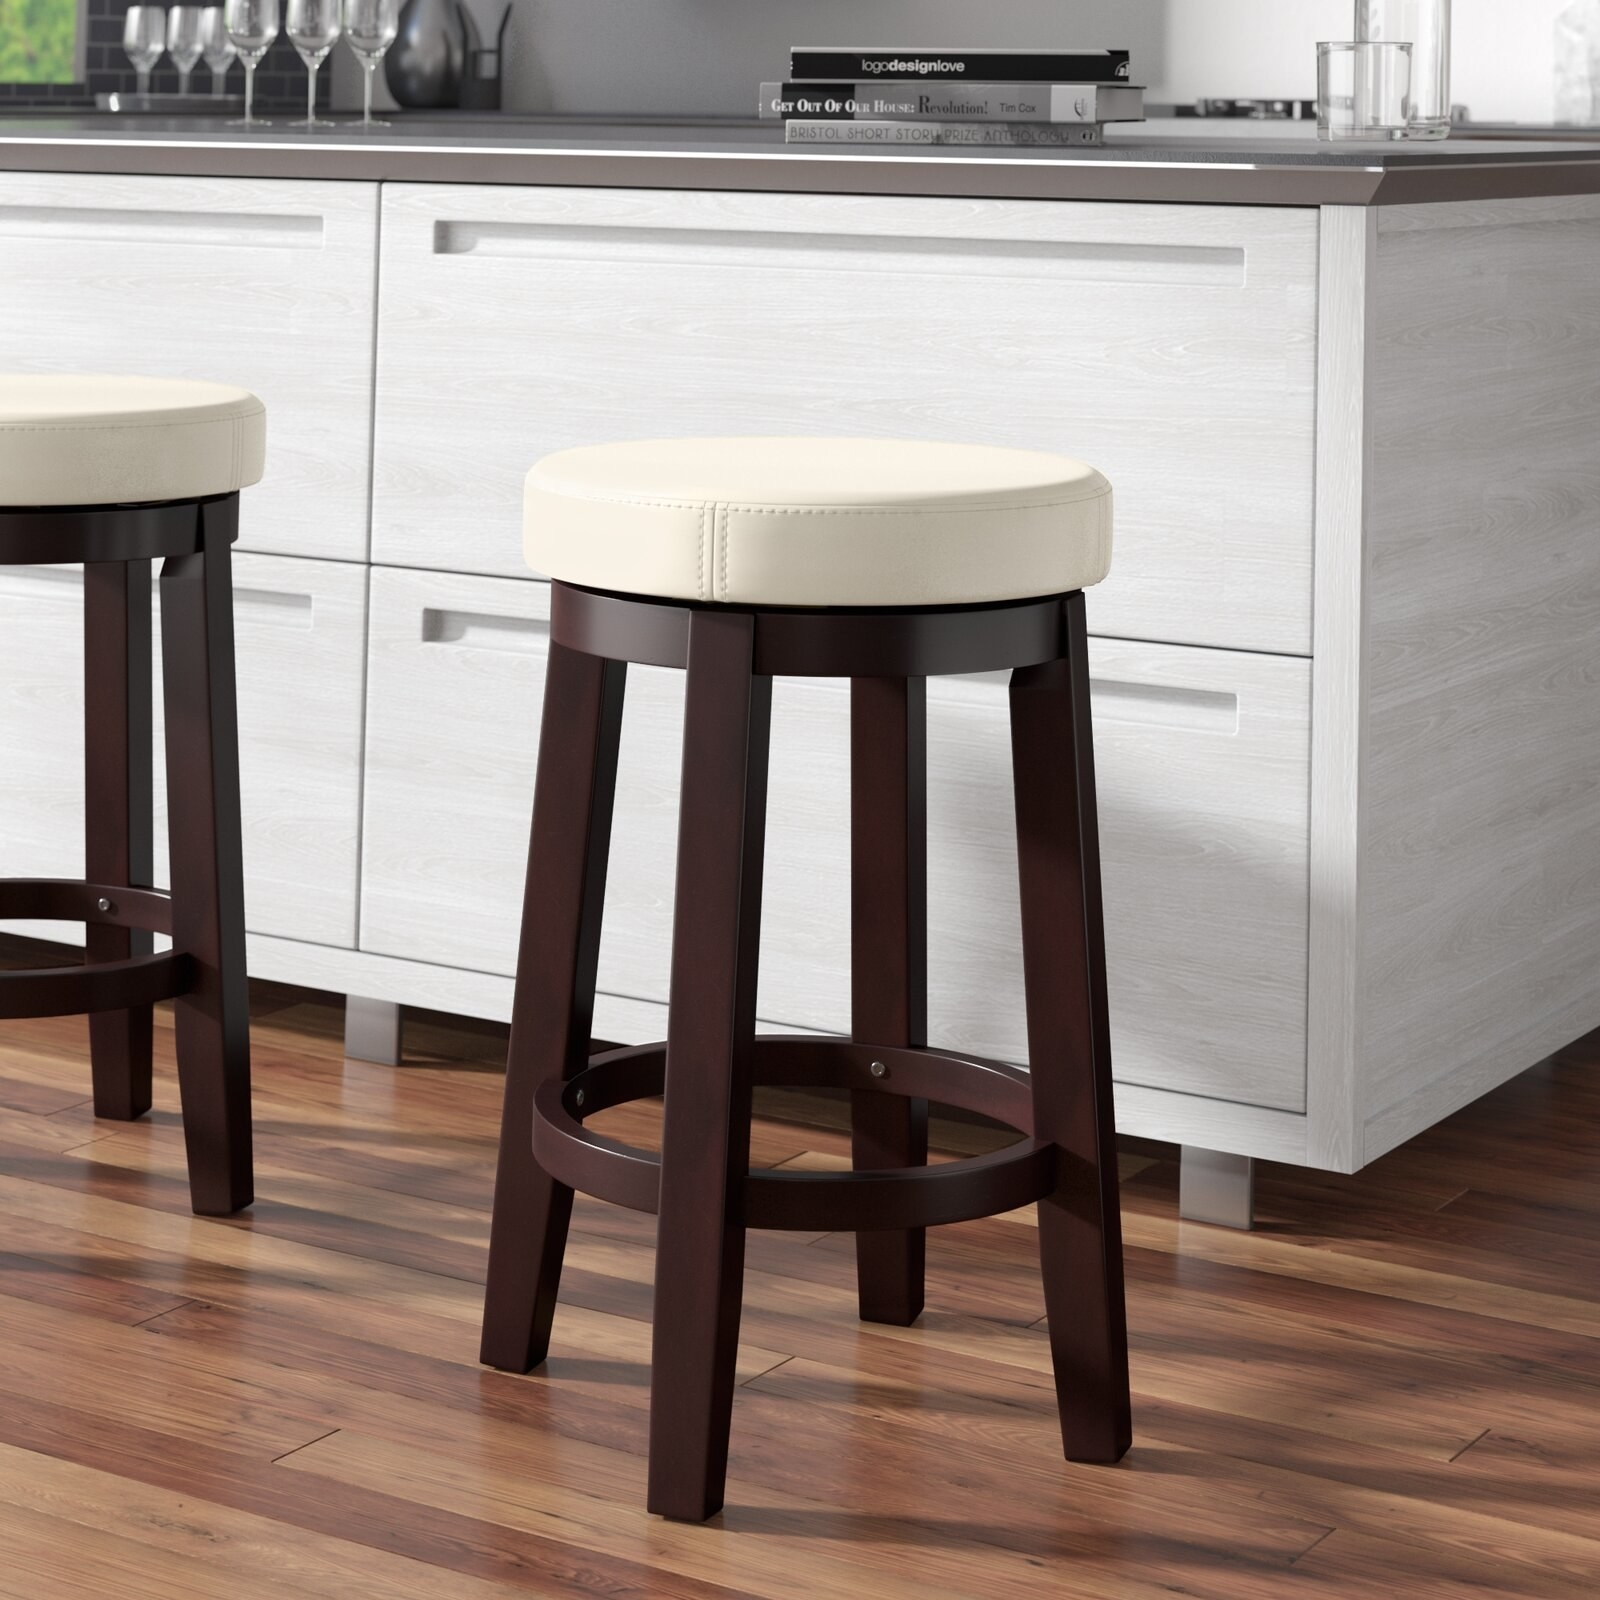 The leather bar stool with wooden legs